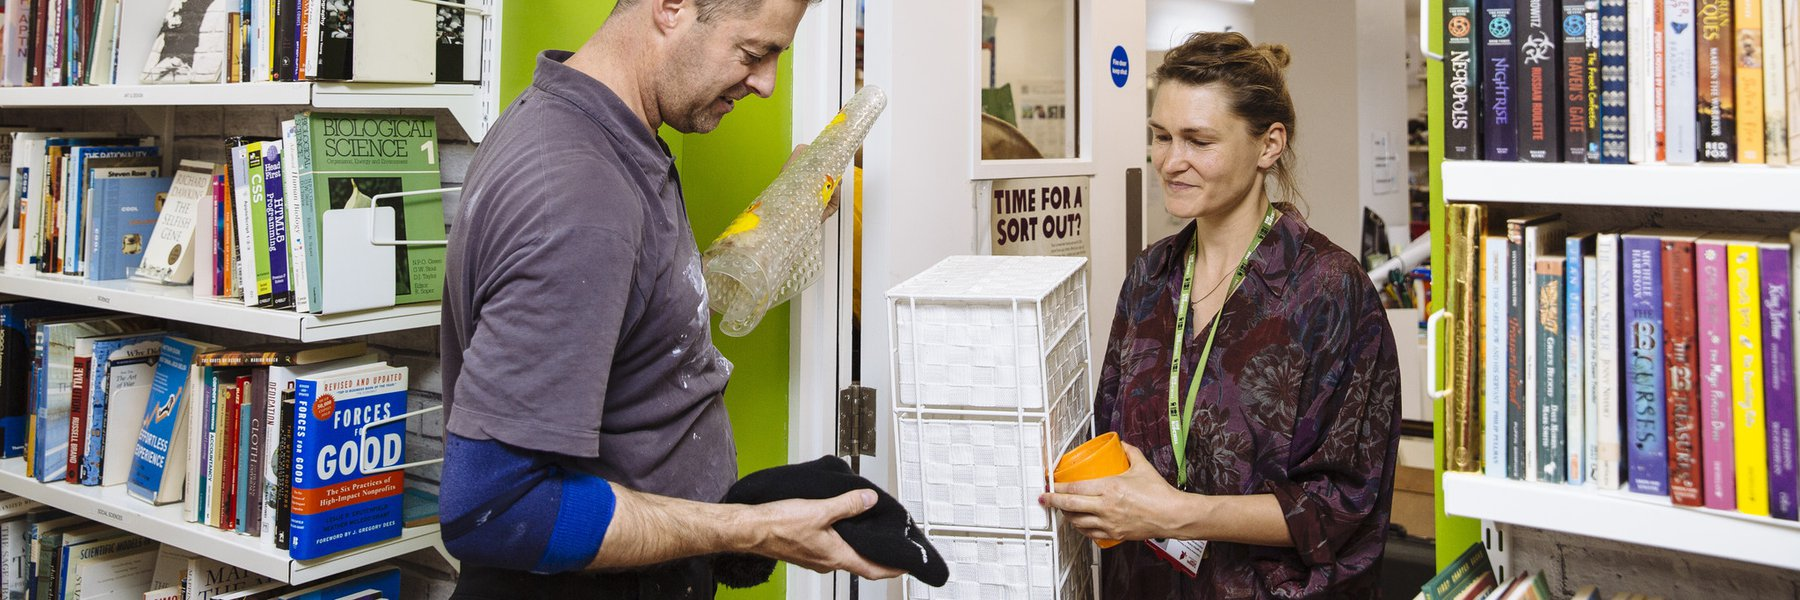 David Franklin, left, donates items to Angie Walter at the Oxfam shop on Cowley Road, Oxford